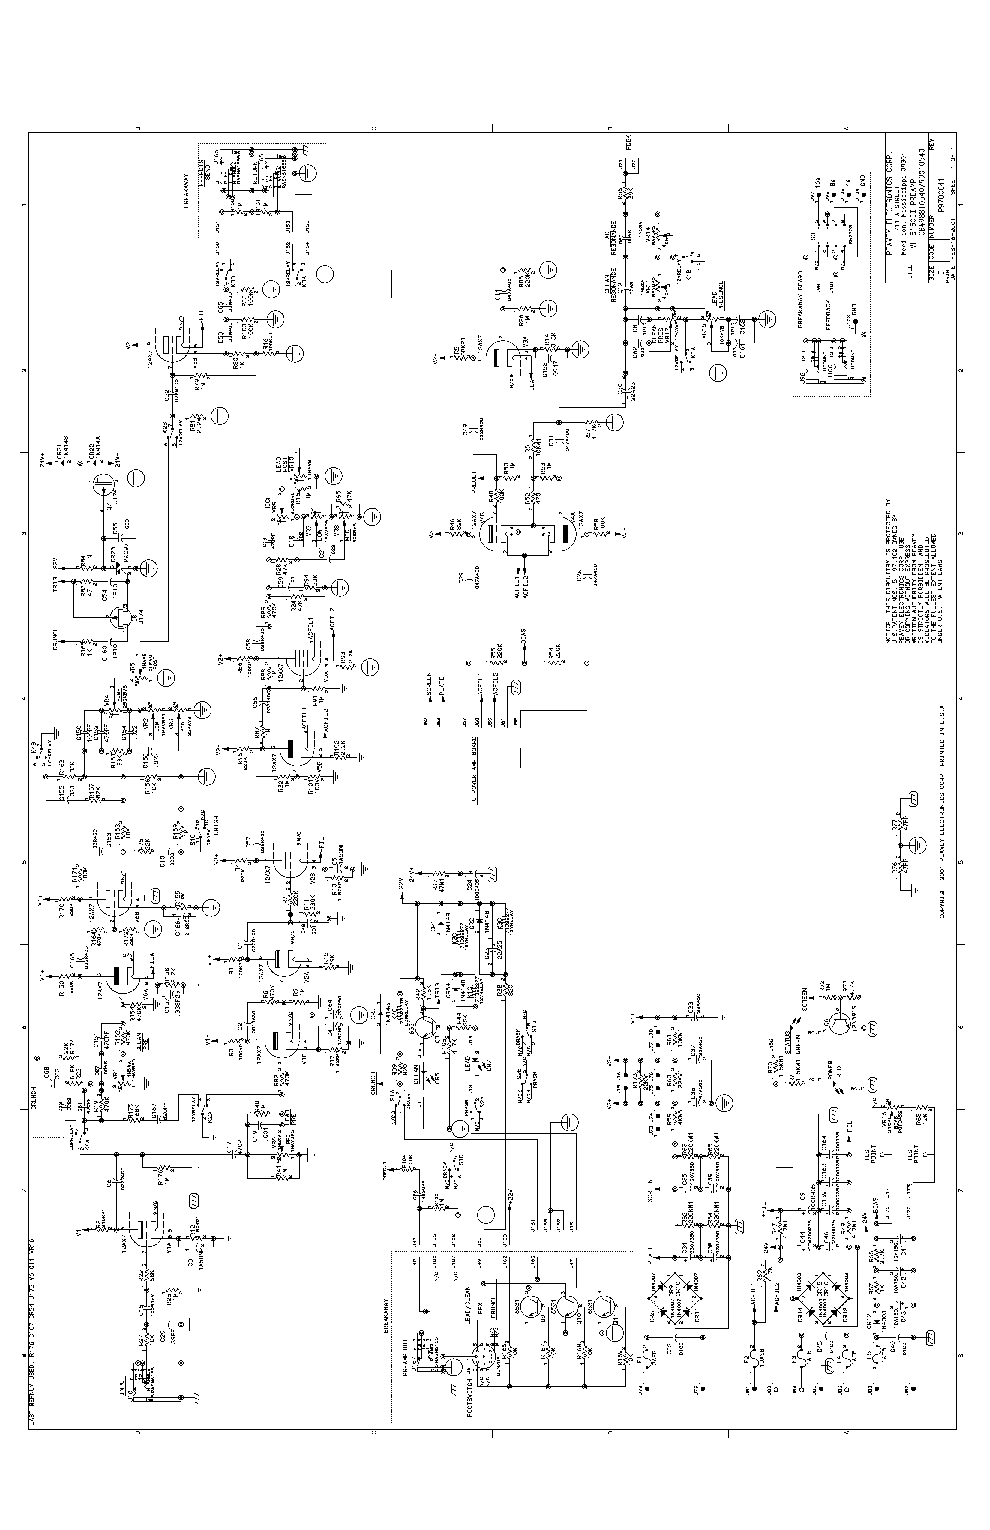 peavey schematic diagram  images  auto fuse box diagram